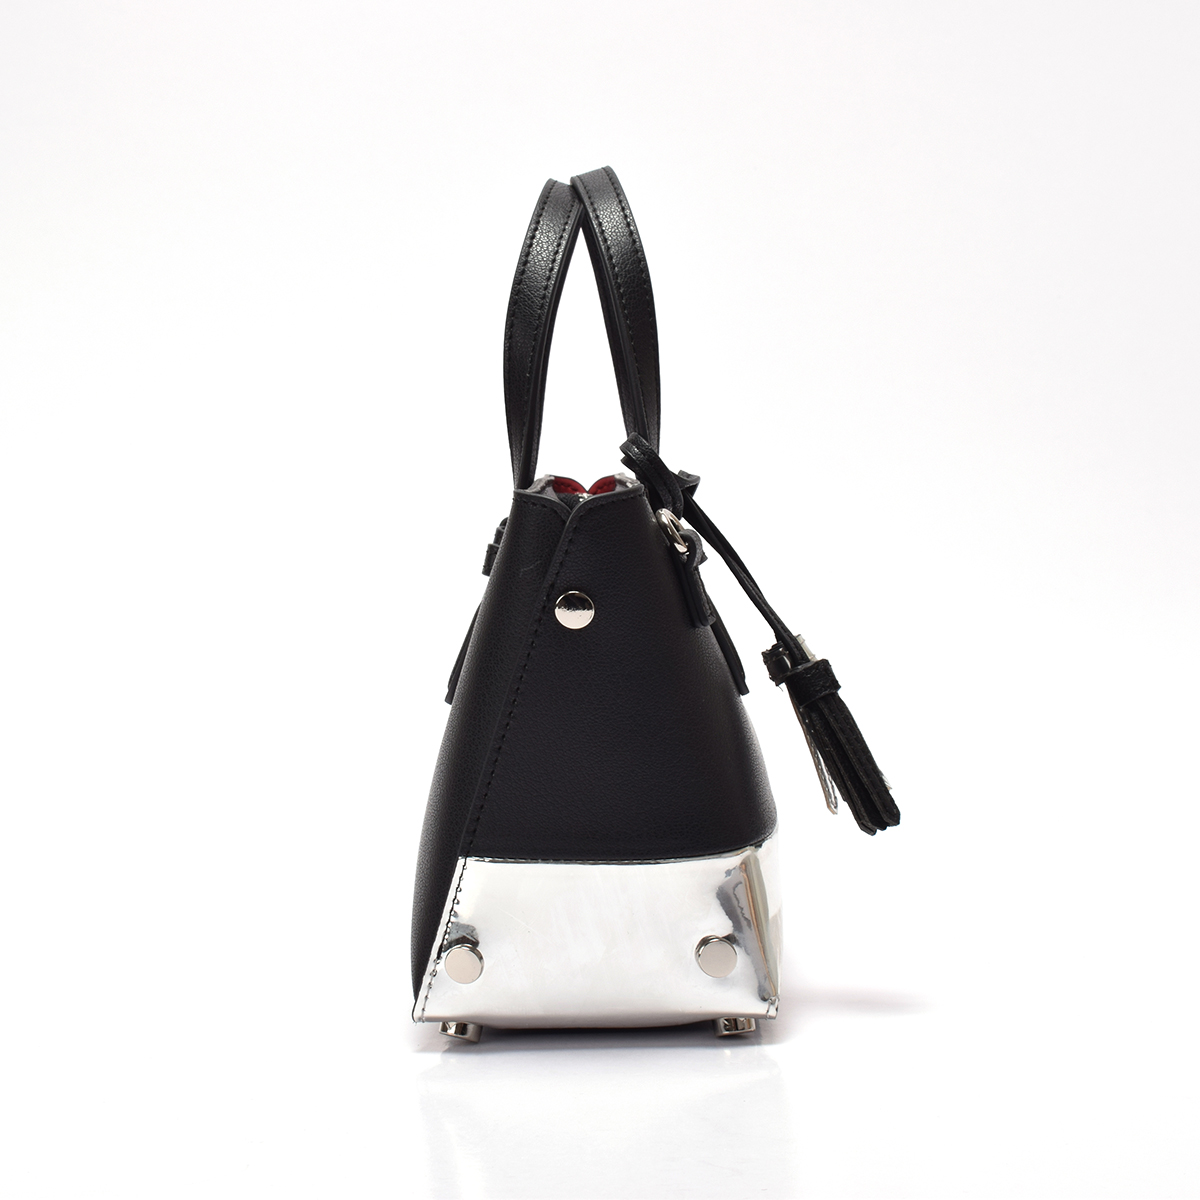 Sanlly High-quality blue leather handbags and purses for wholesale for women-1